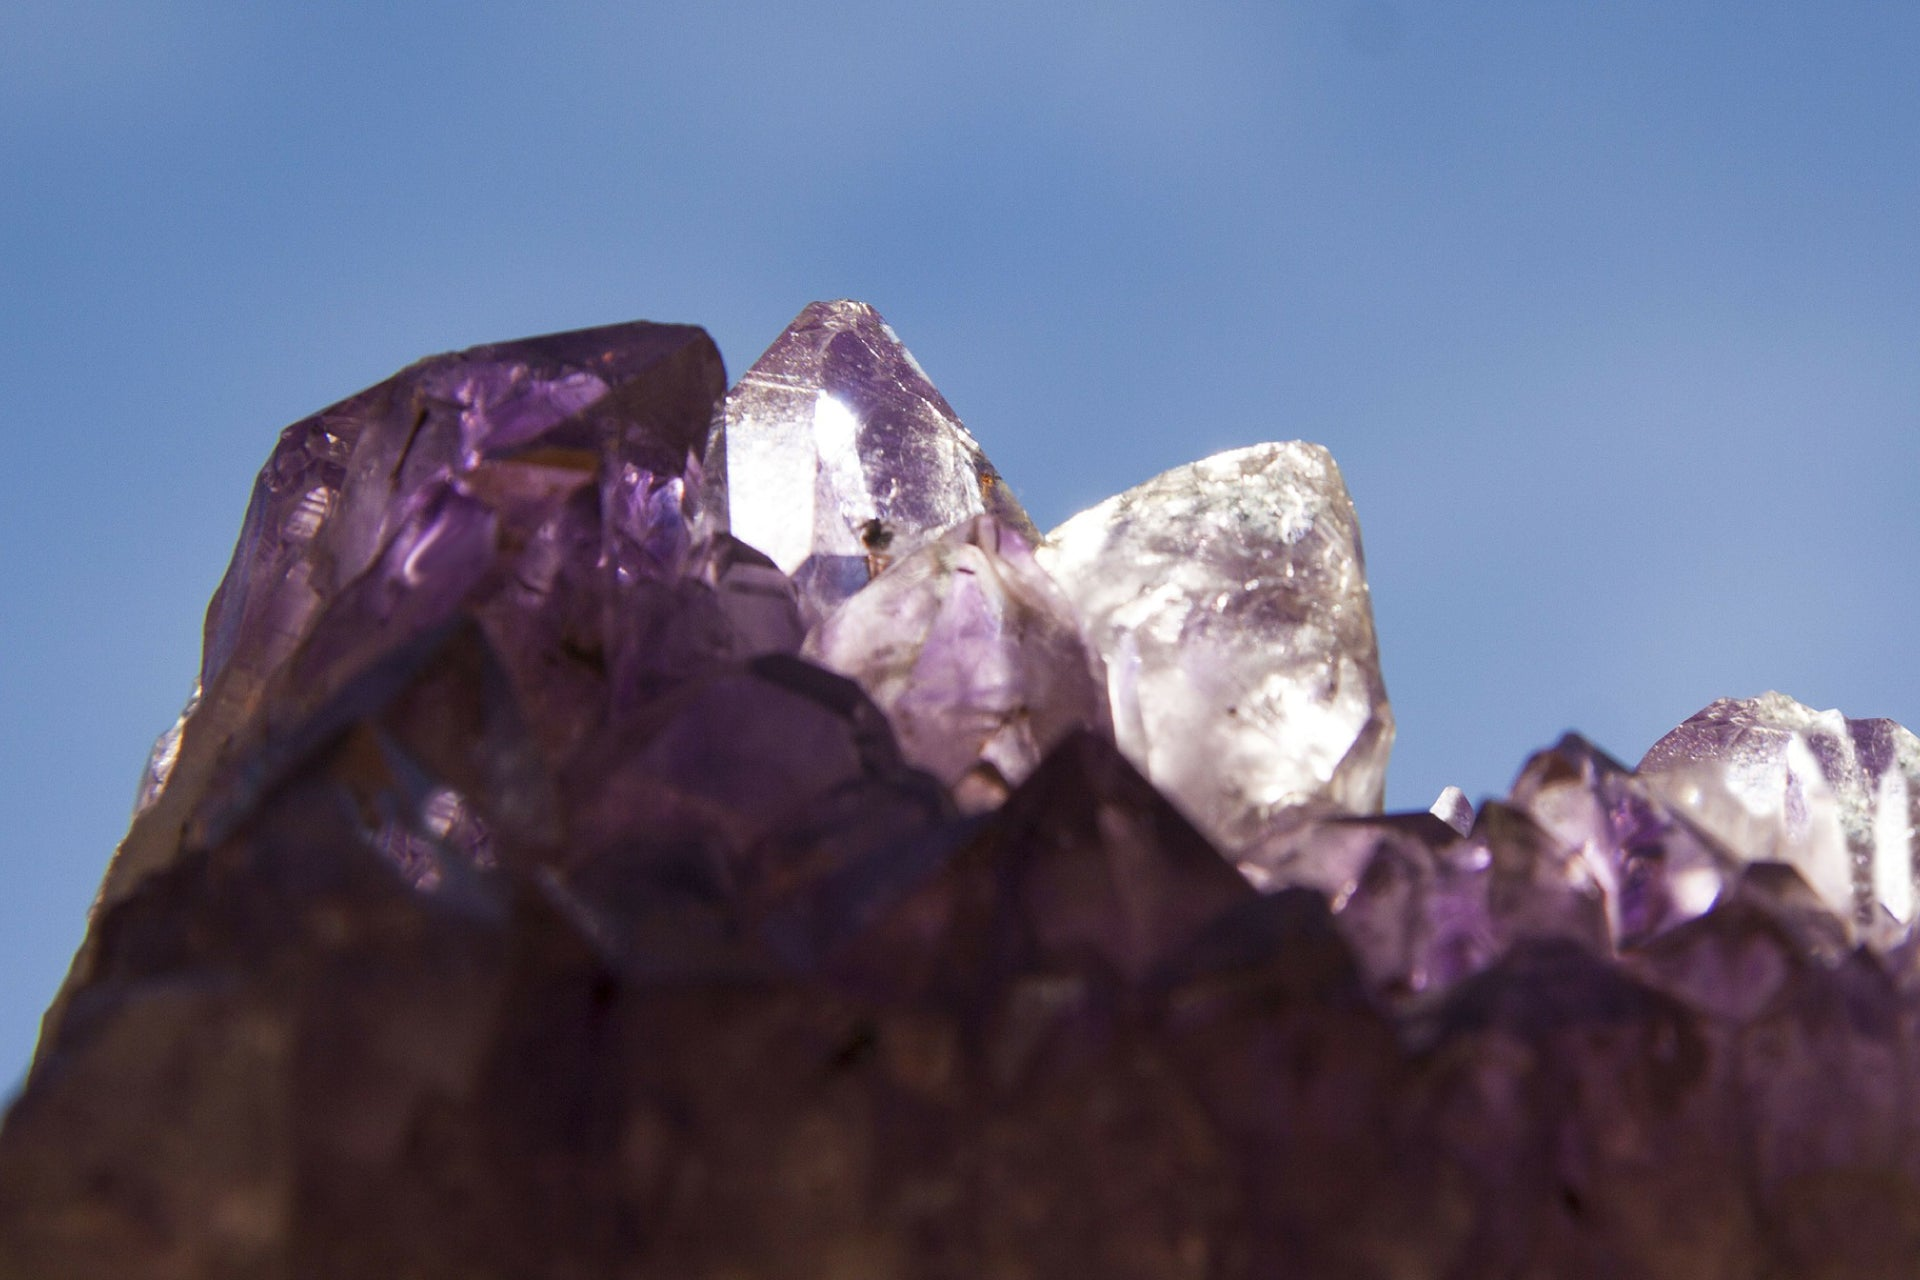 close up of an amethyst crystal cluster